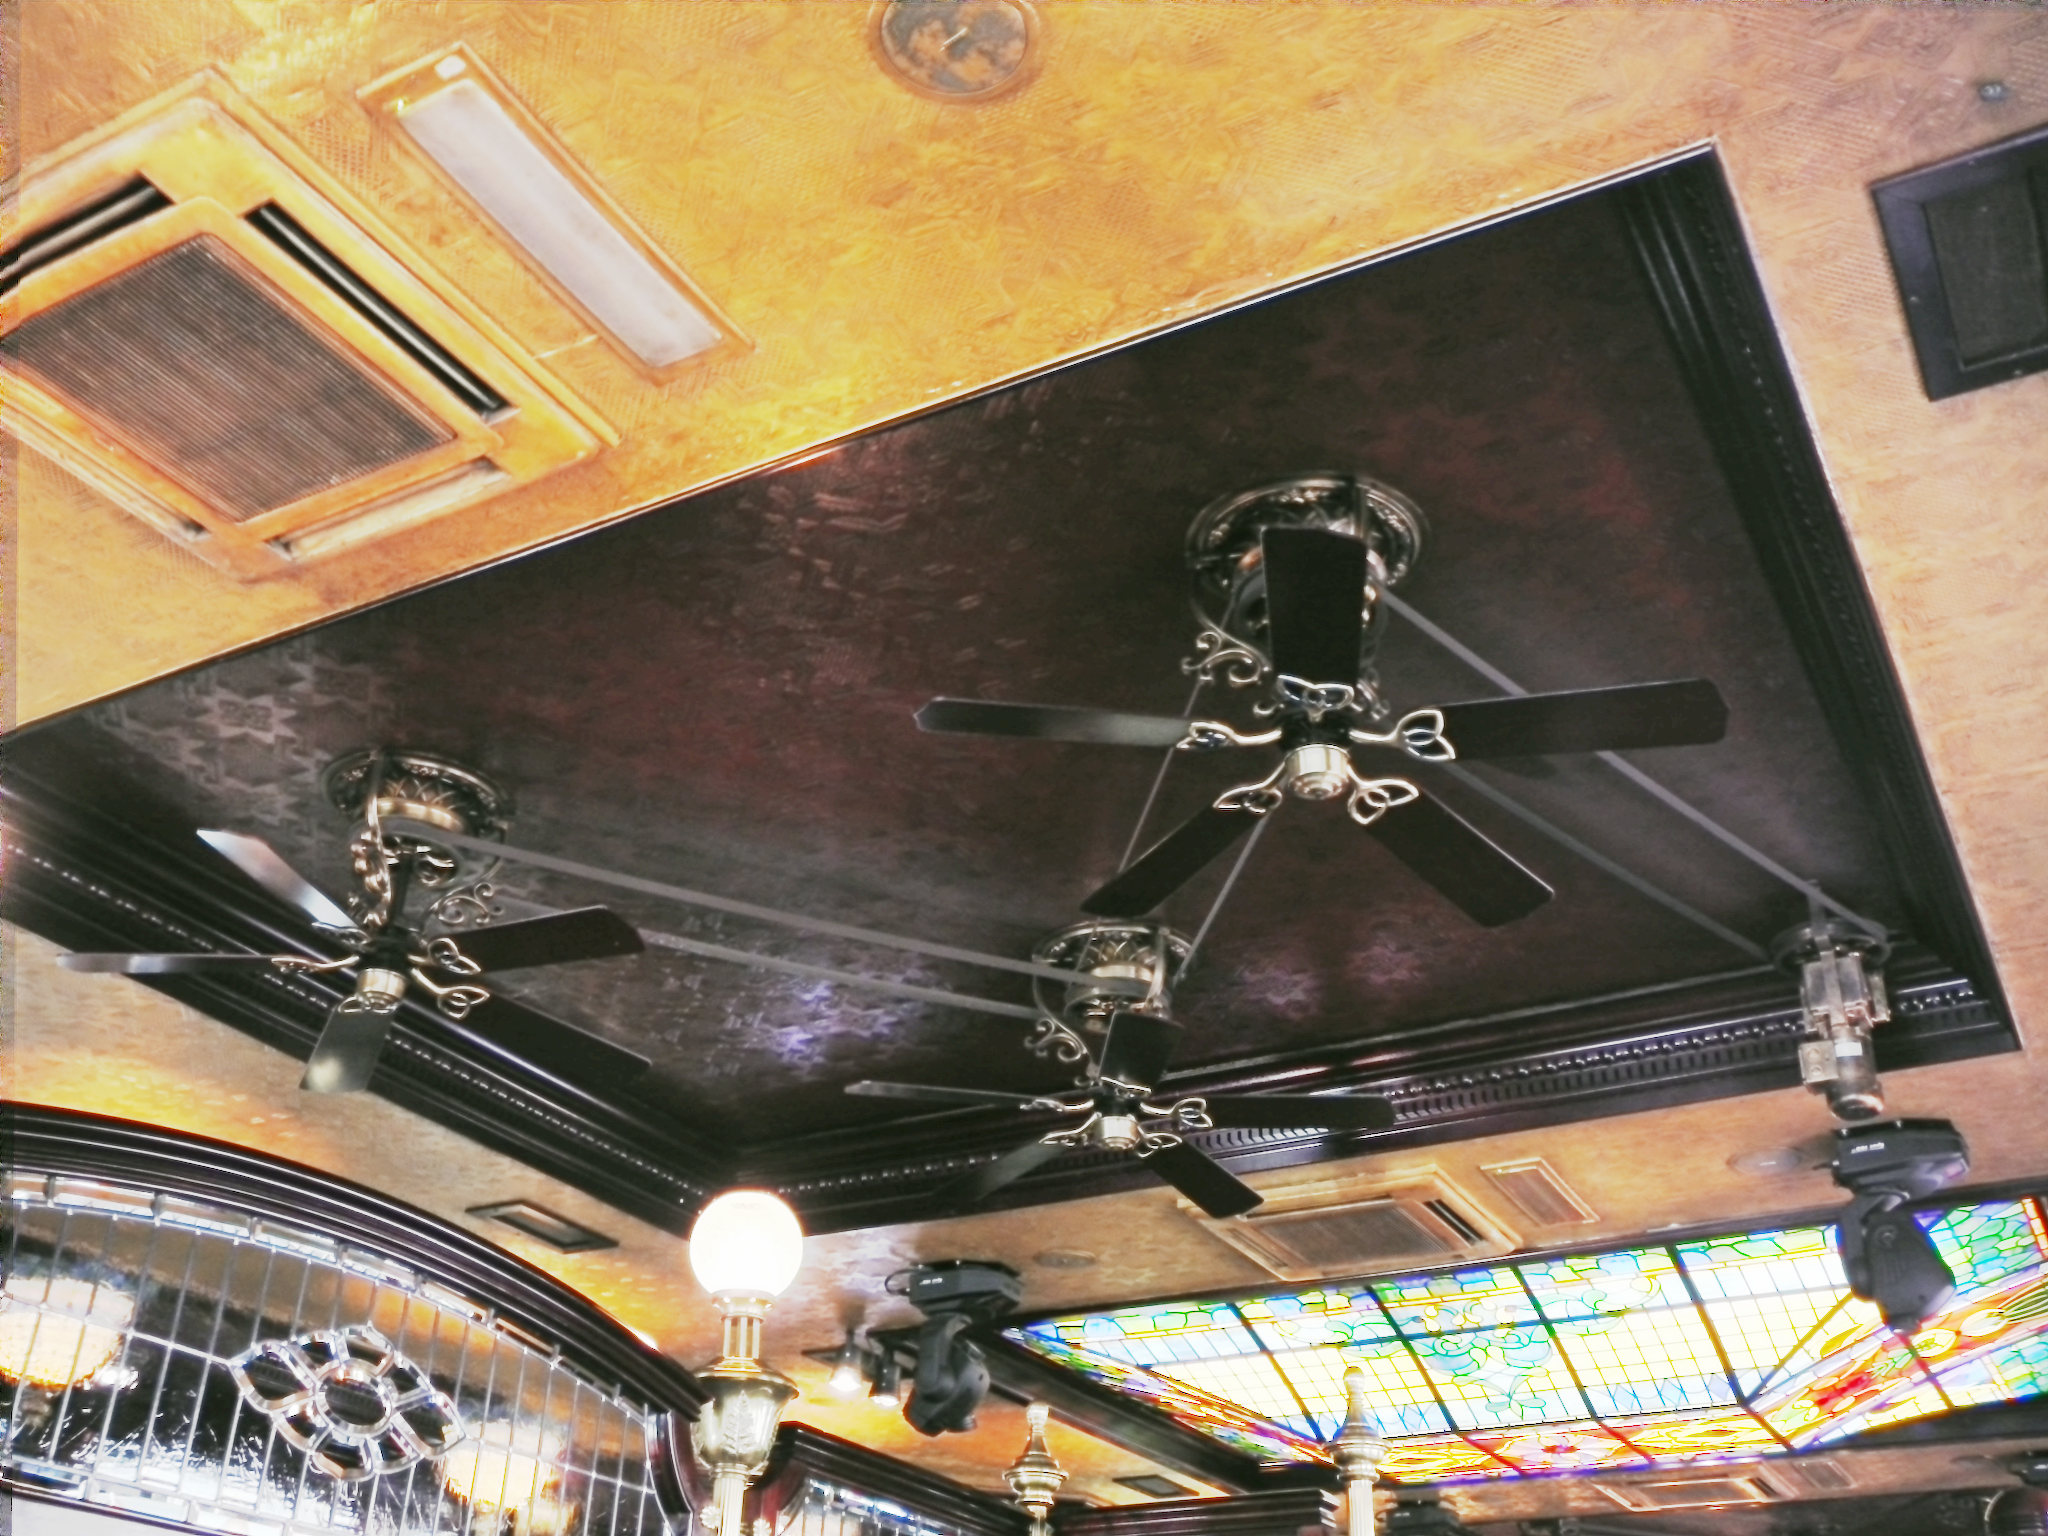 Water Powered Ceiling Fan : Ceiling fan